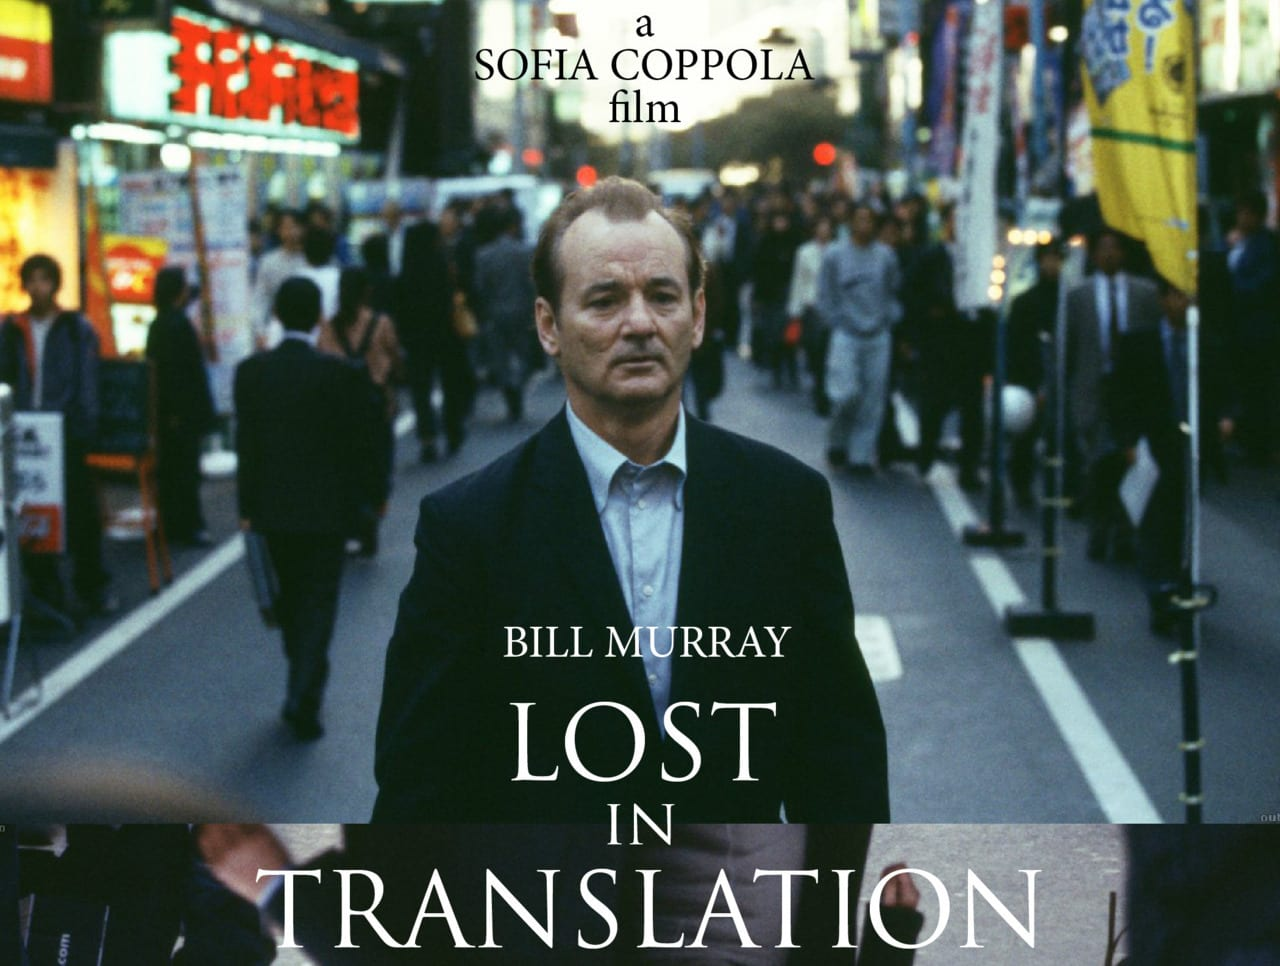 Sofia Coppola and Bill Murray, who scored Oscar noms for Lost in Translation, team up again in Apple TV+ movie On the Rocks.